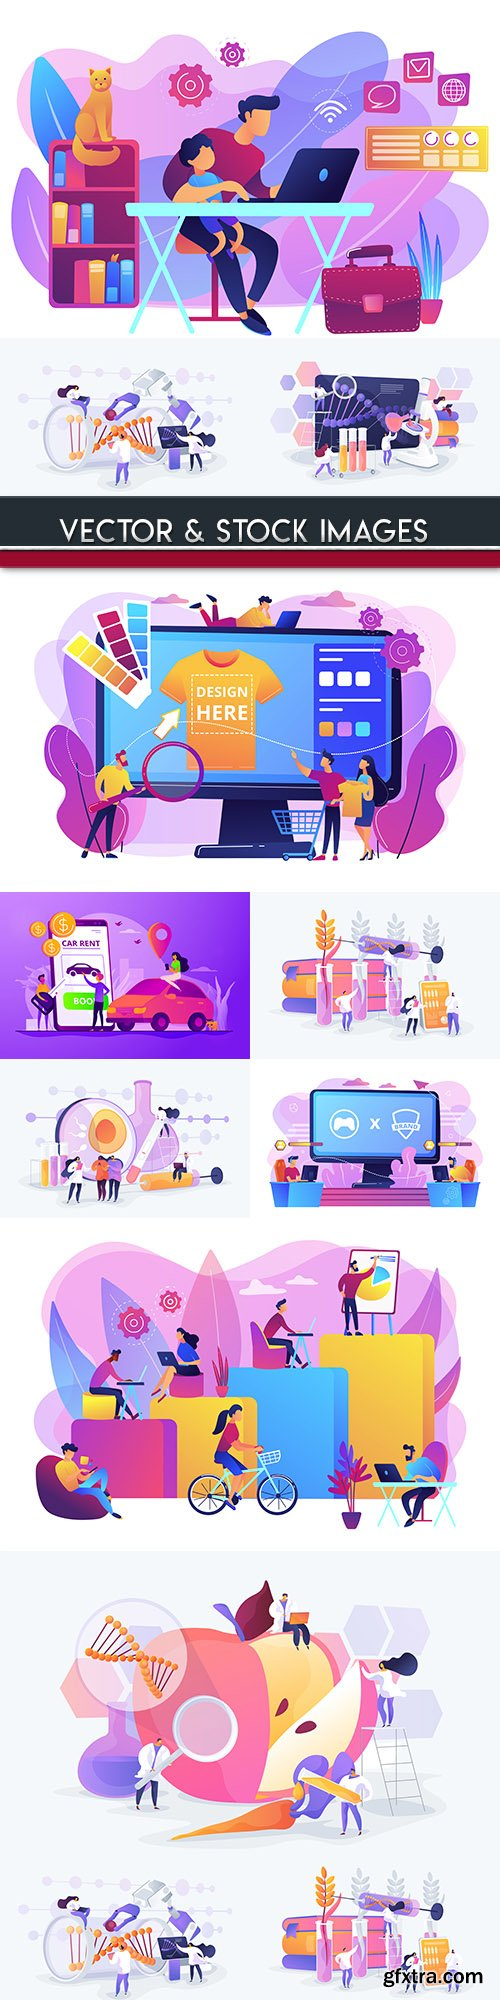 People business technology online graphic flat